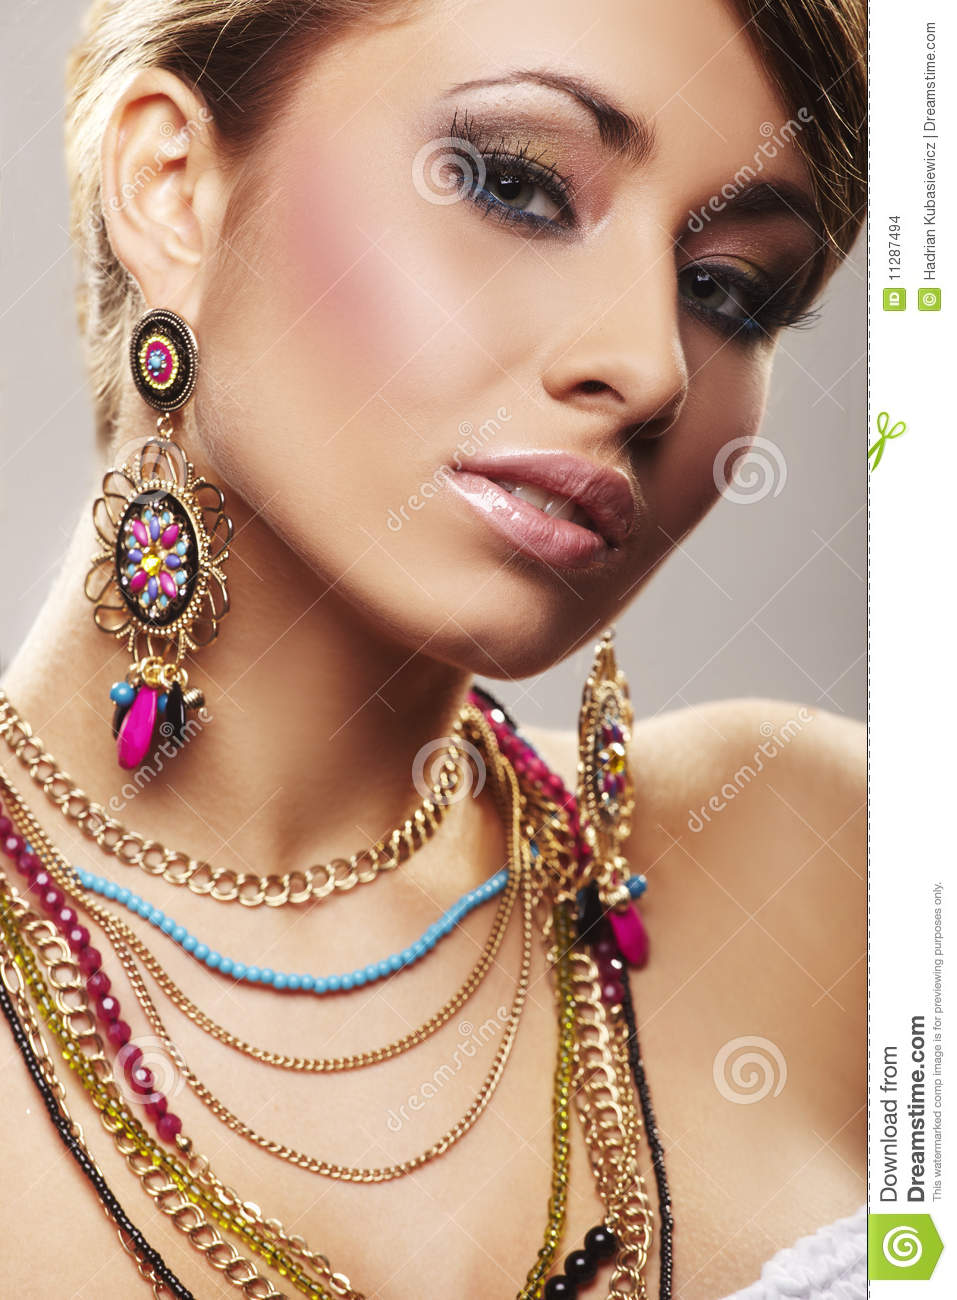 Fashion woman with jewelry stock photo. Image of gold ...